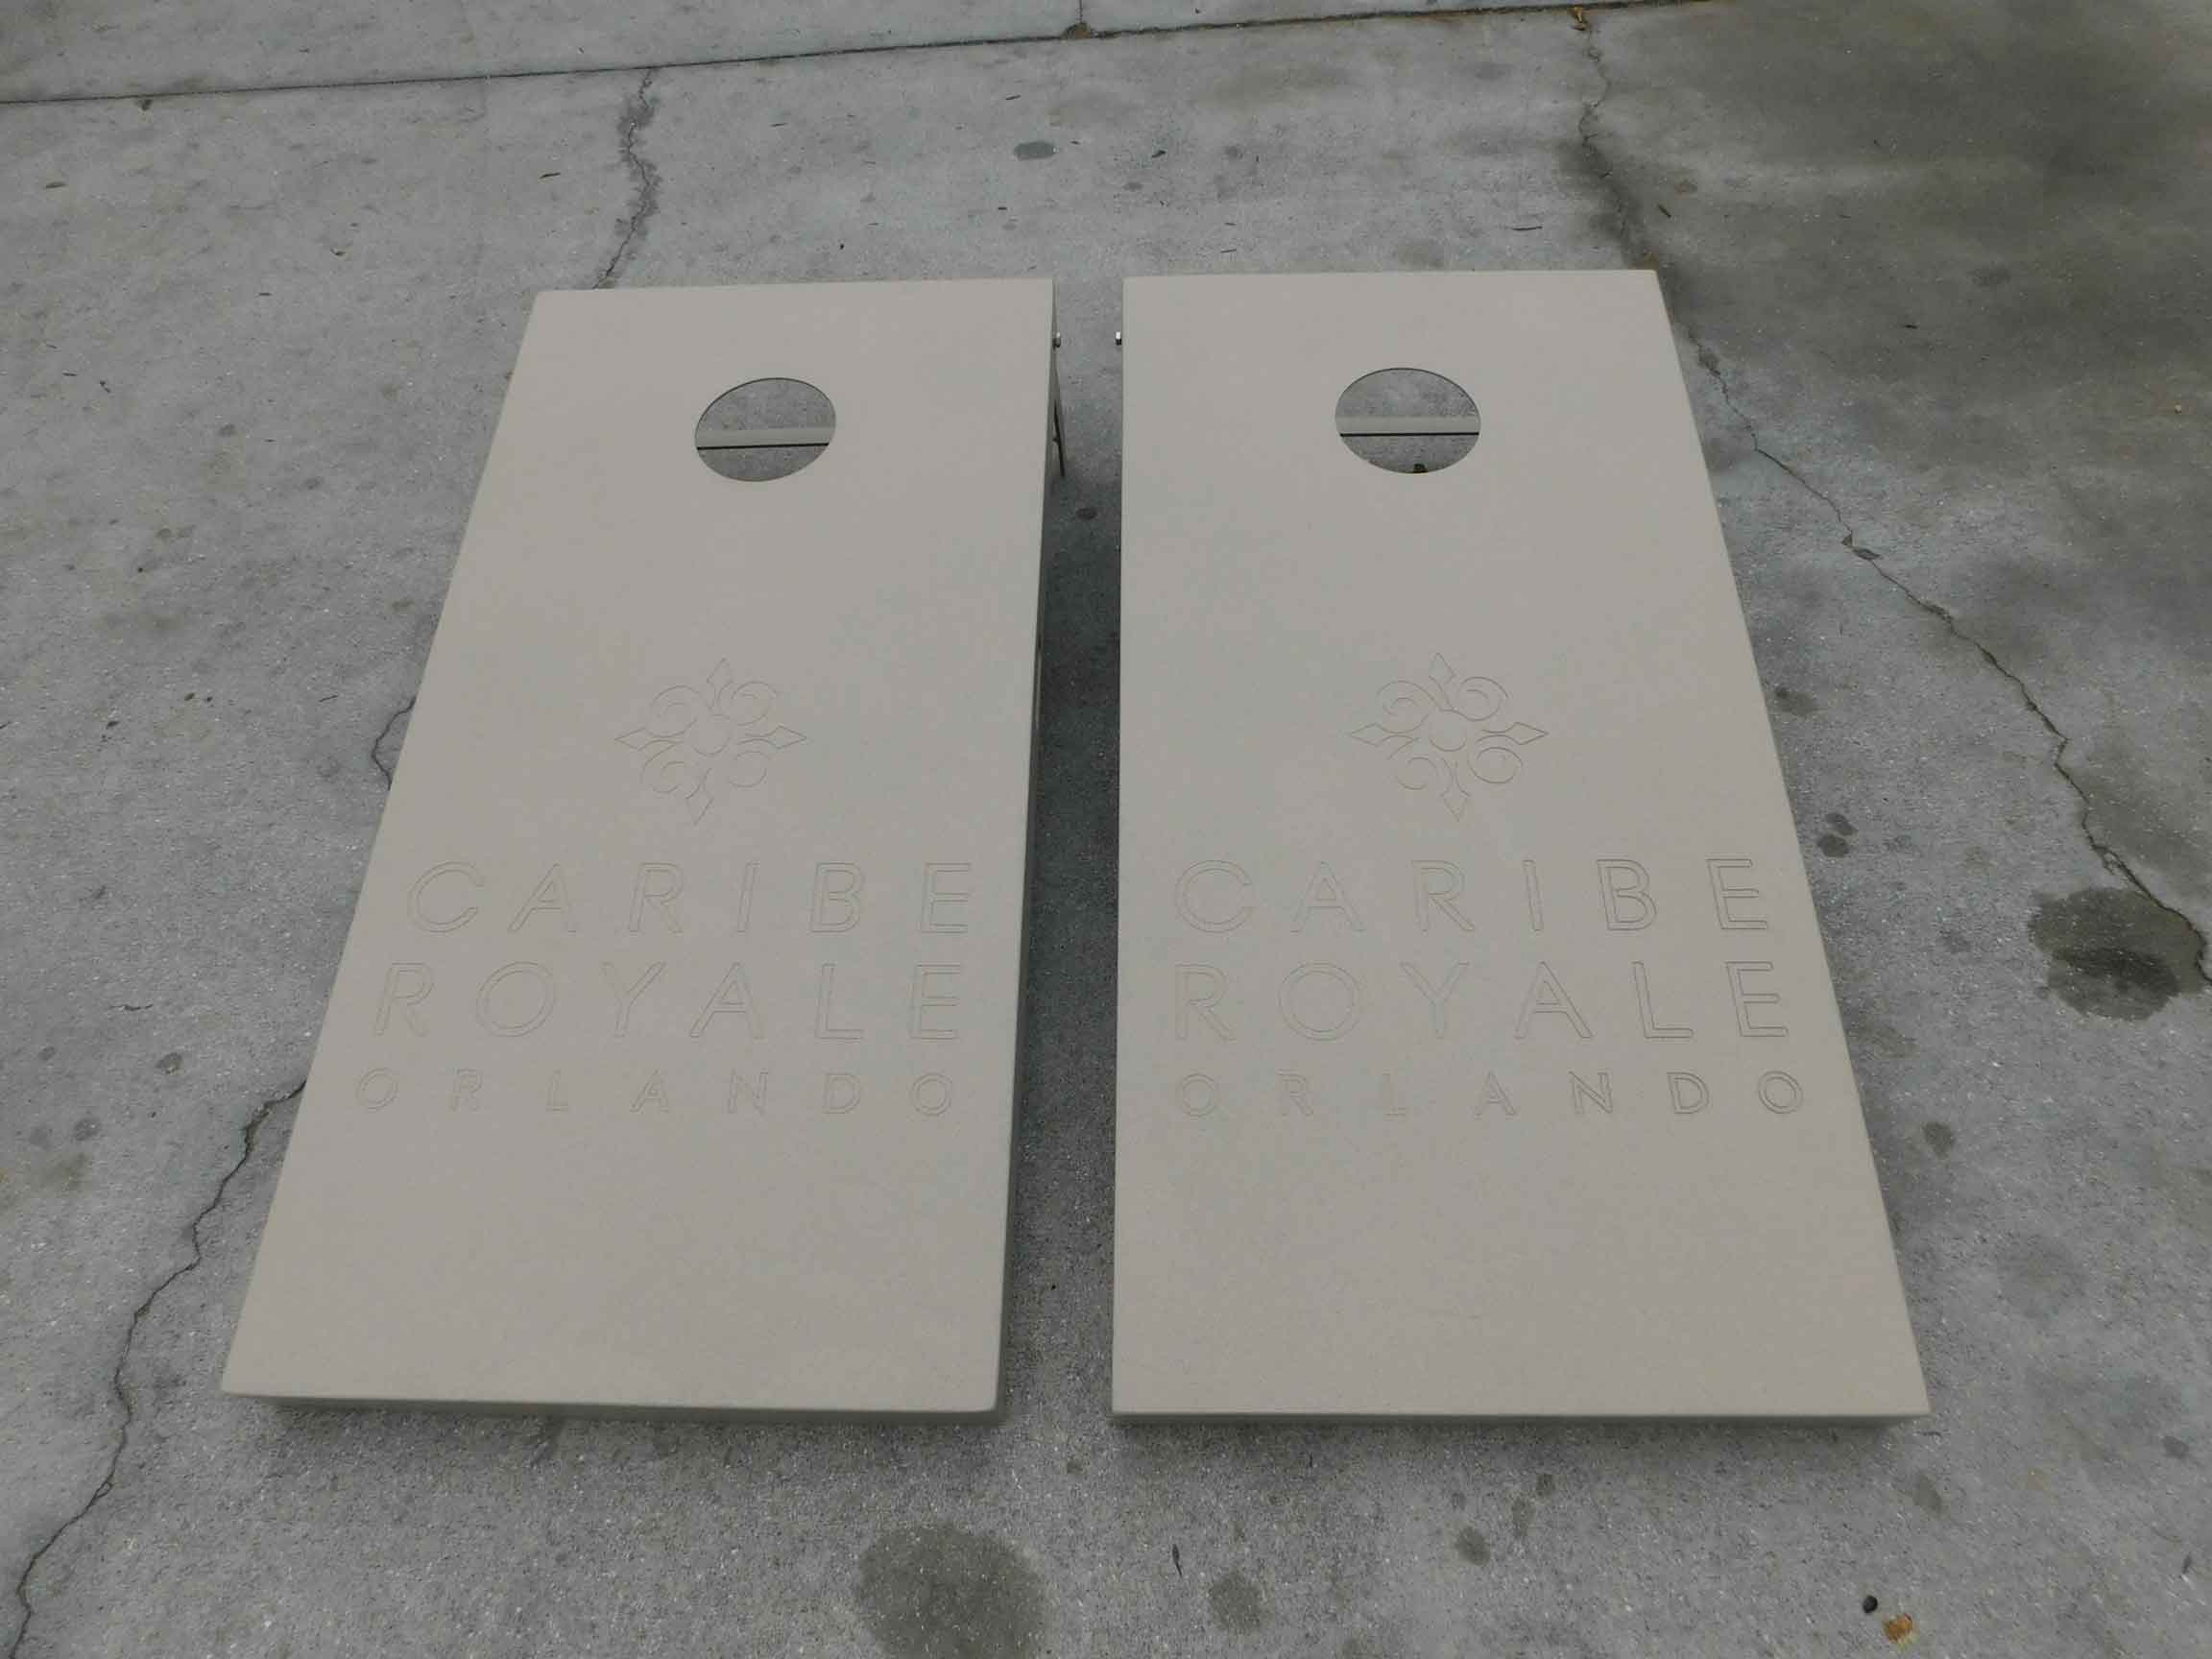 Caribe Royale Hotel in Orlando, Florida's custom, engraved cornhole set made by R&R Outdoors All Weather Billiards